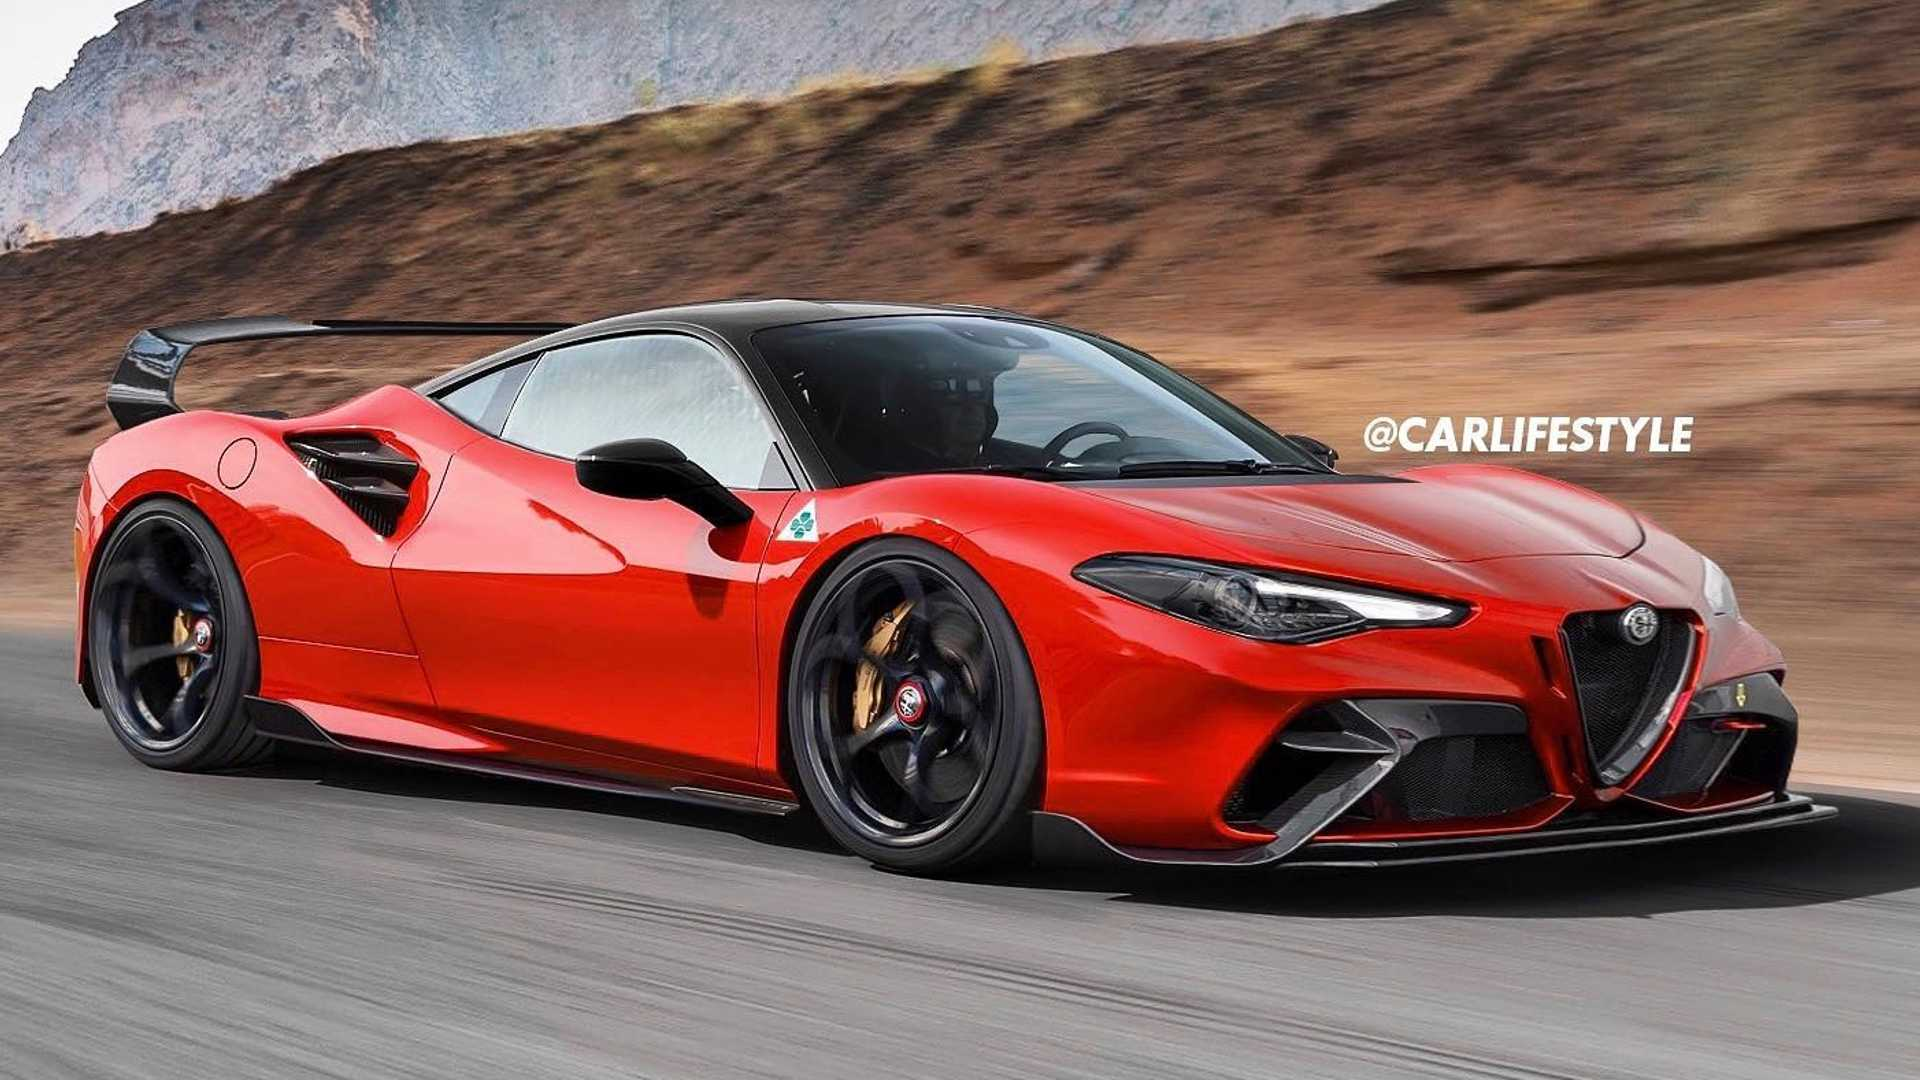 Alfa Romeo Giulia GTAm reimagined in mid-engine supercar rendering